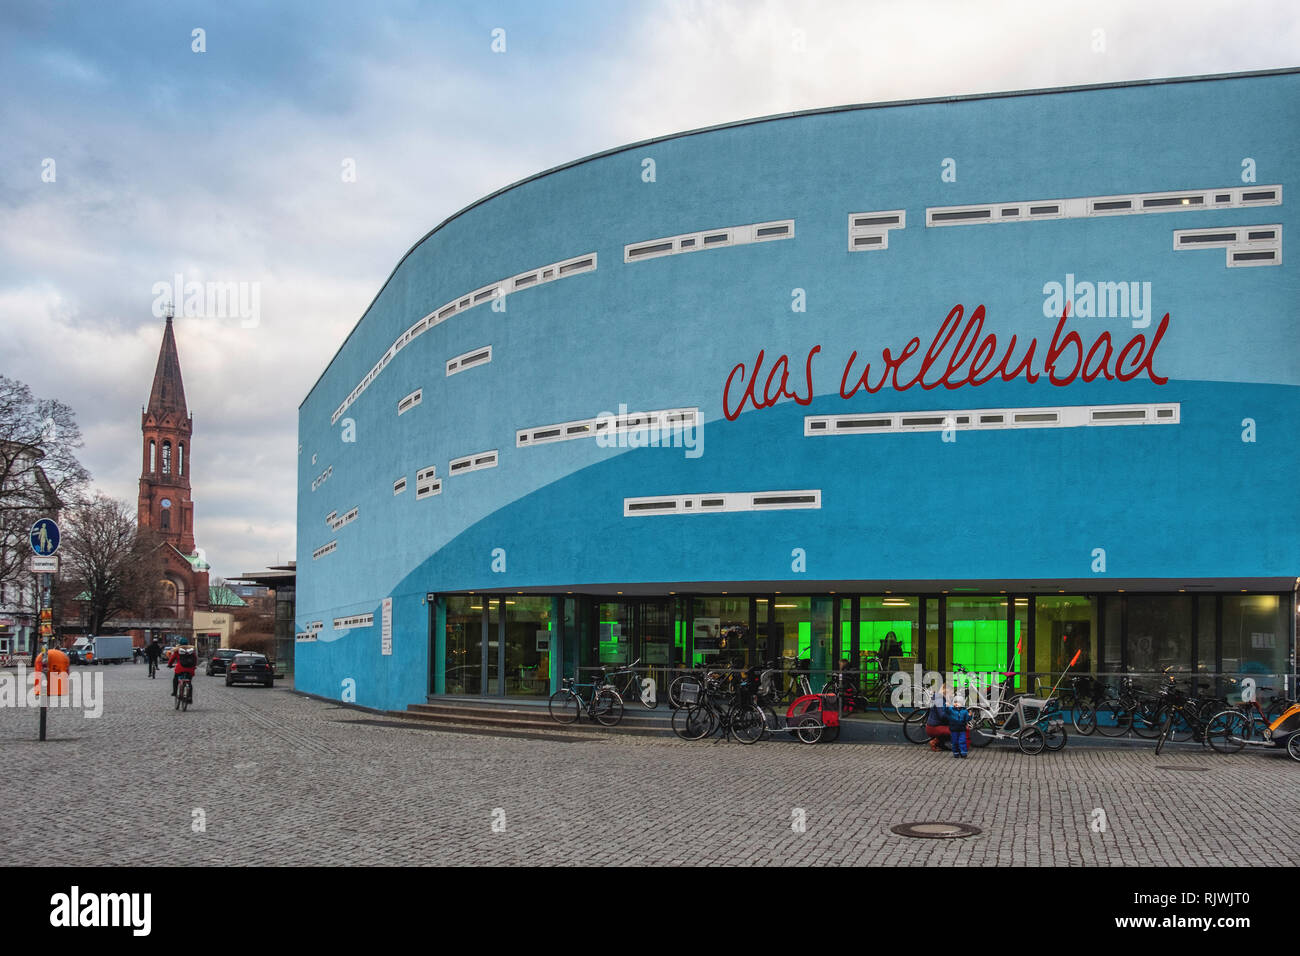 Berlin, Kreuzberg. Indoor swimming pool & leisure centre at Spreewaldplatz. Exterior view - Stock Image